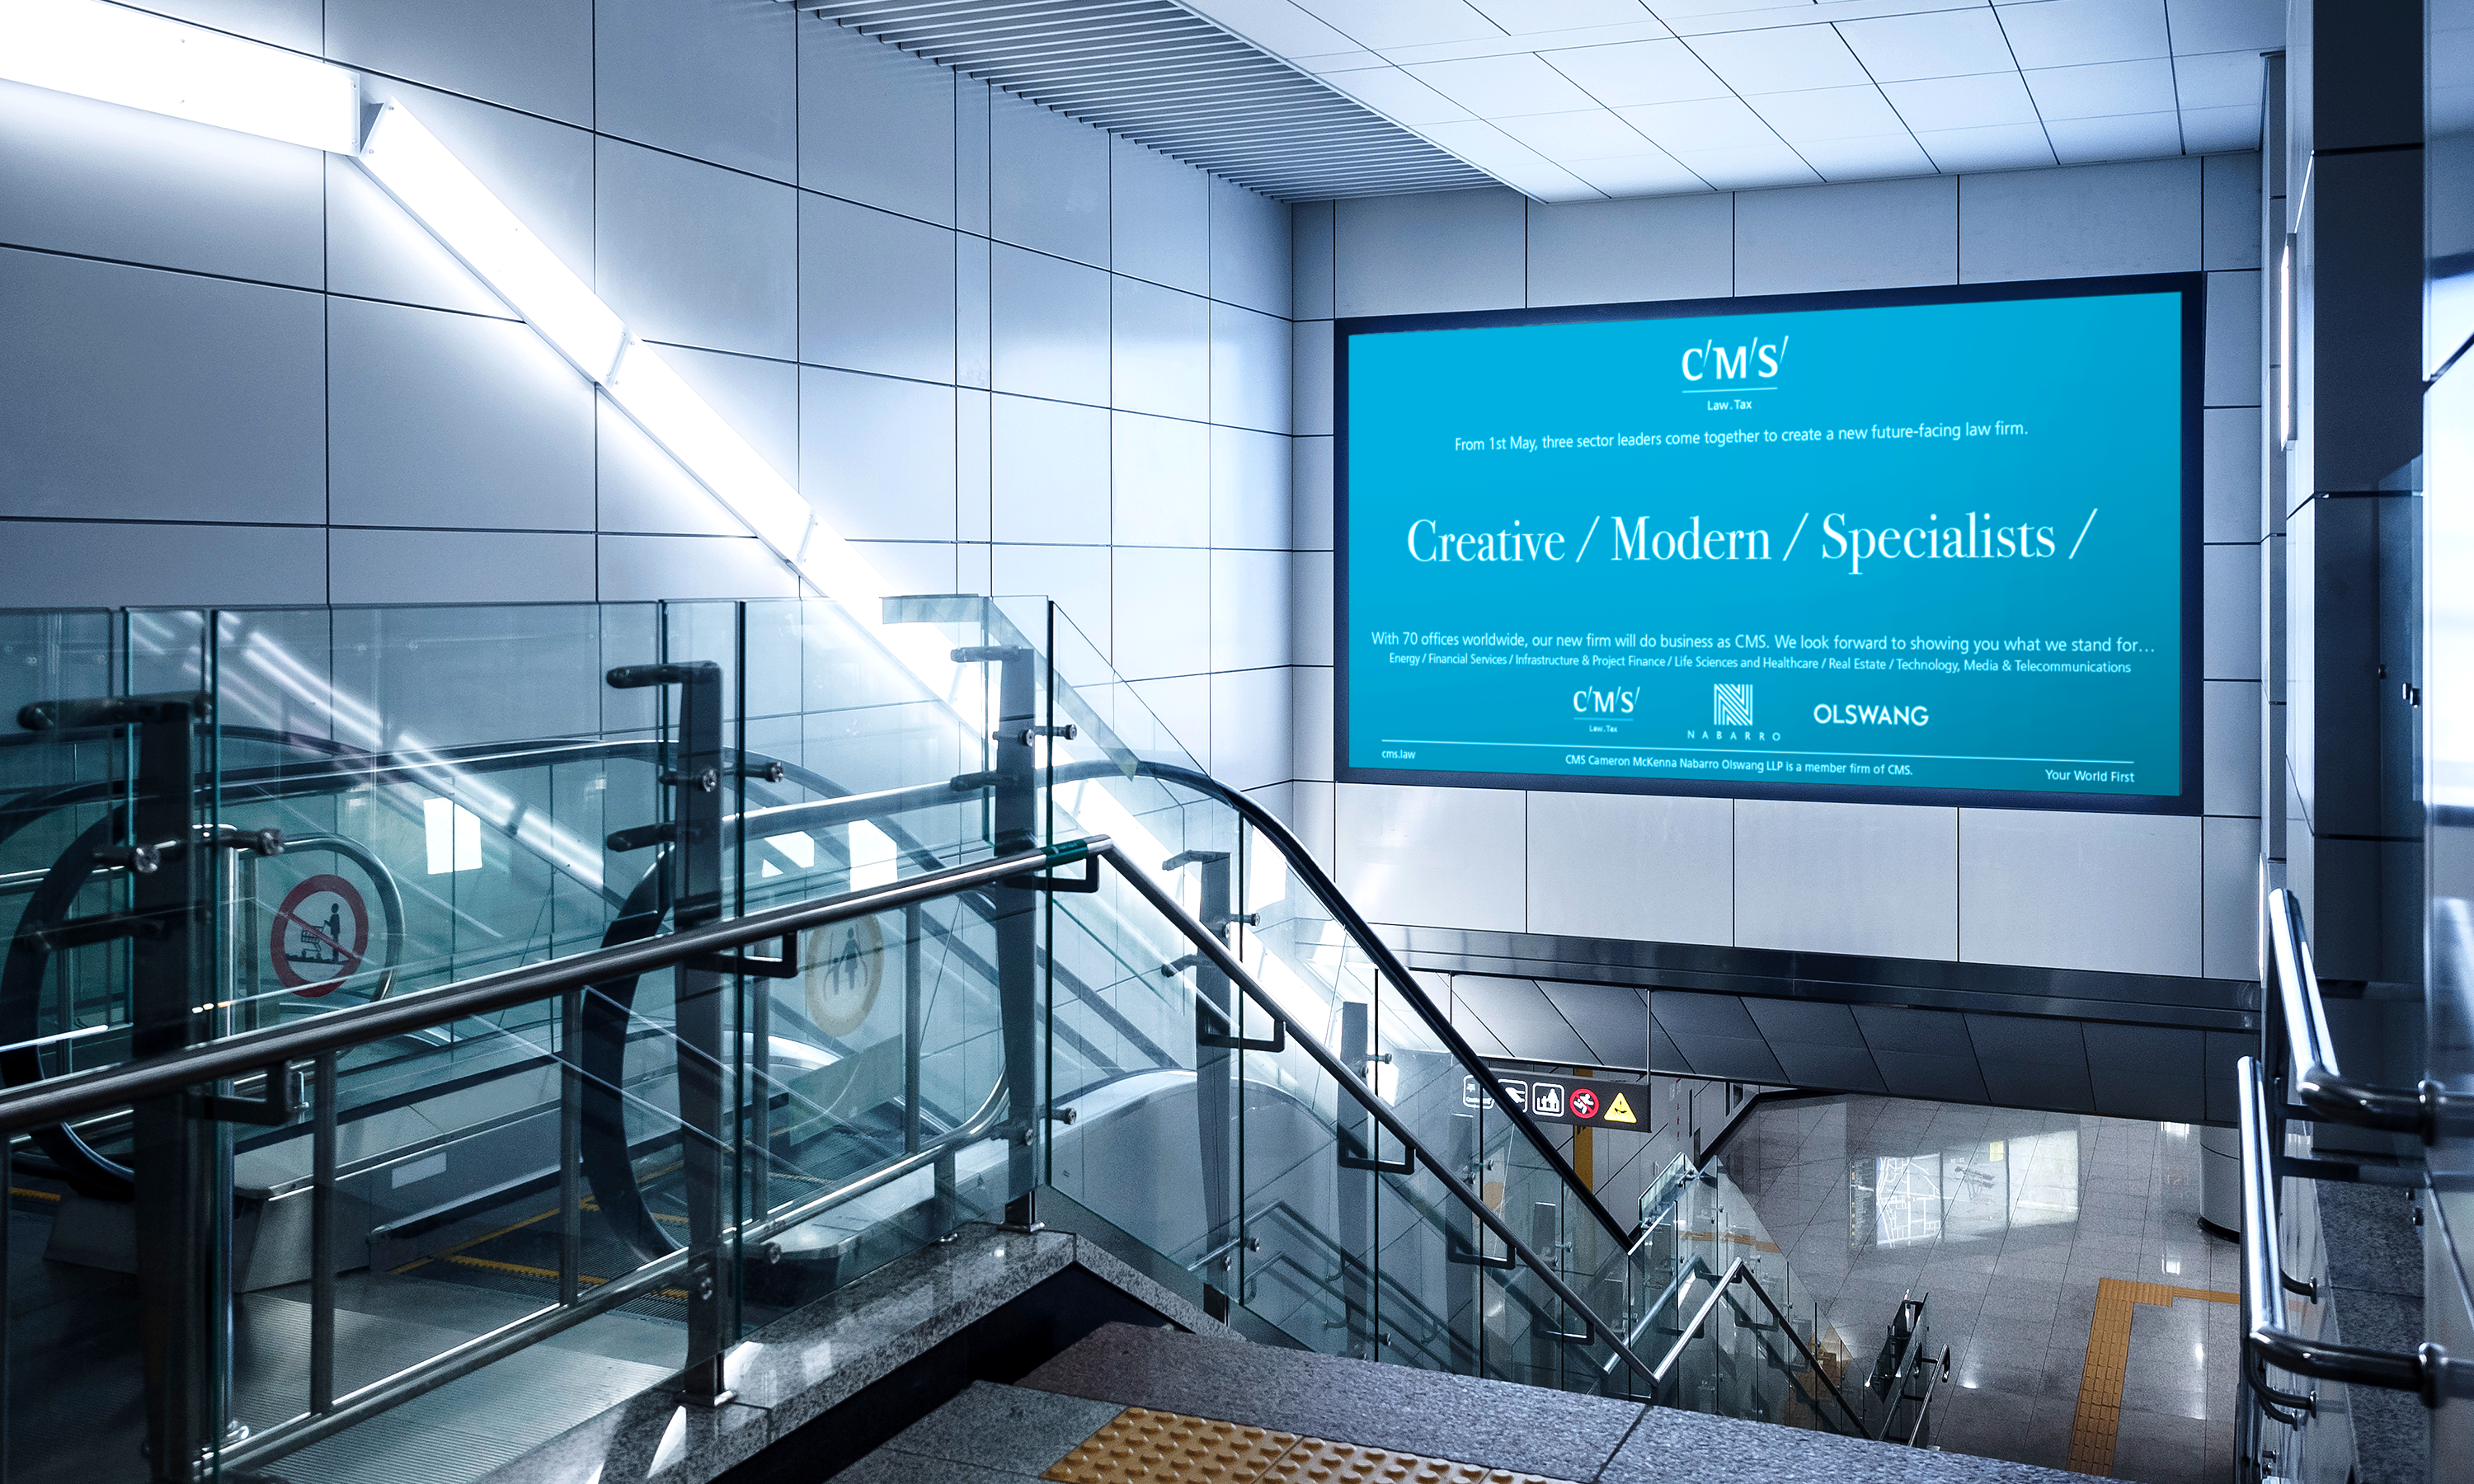 Branding and advertising by Neon - CMS London Law Firm - Law sector branding - Creative Modern Specialist London City Airport advertising designed by Dana Robertson